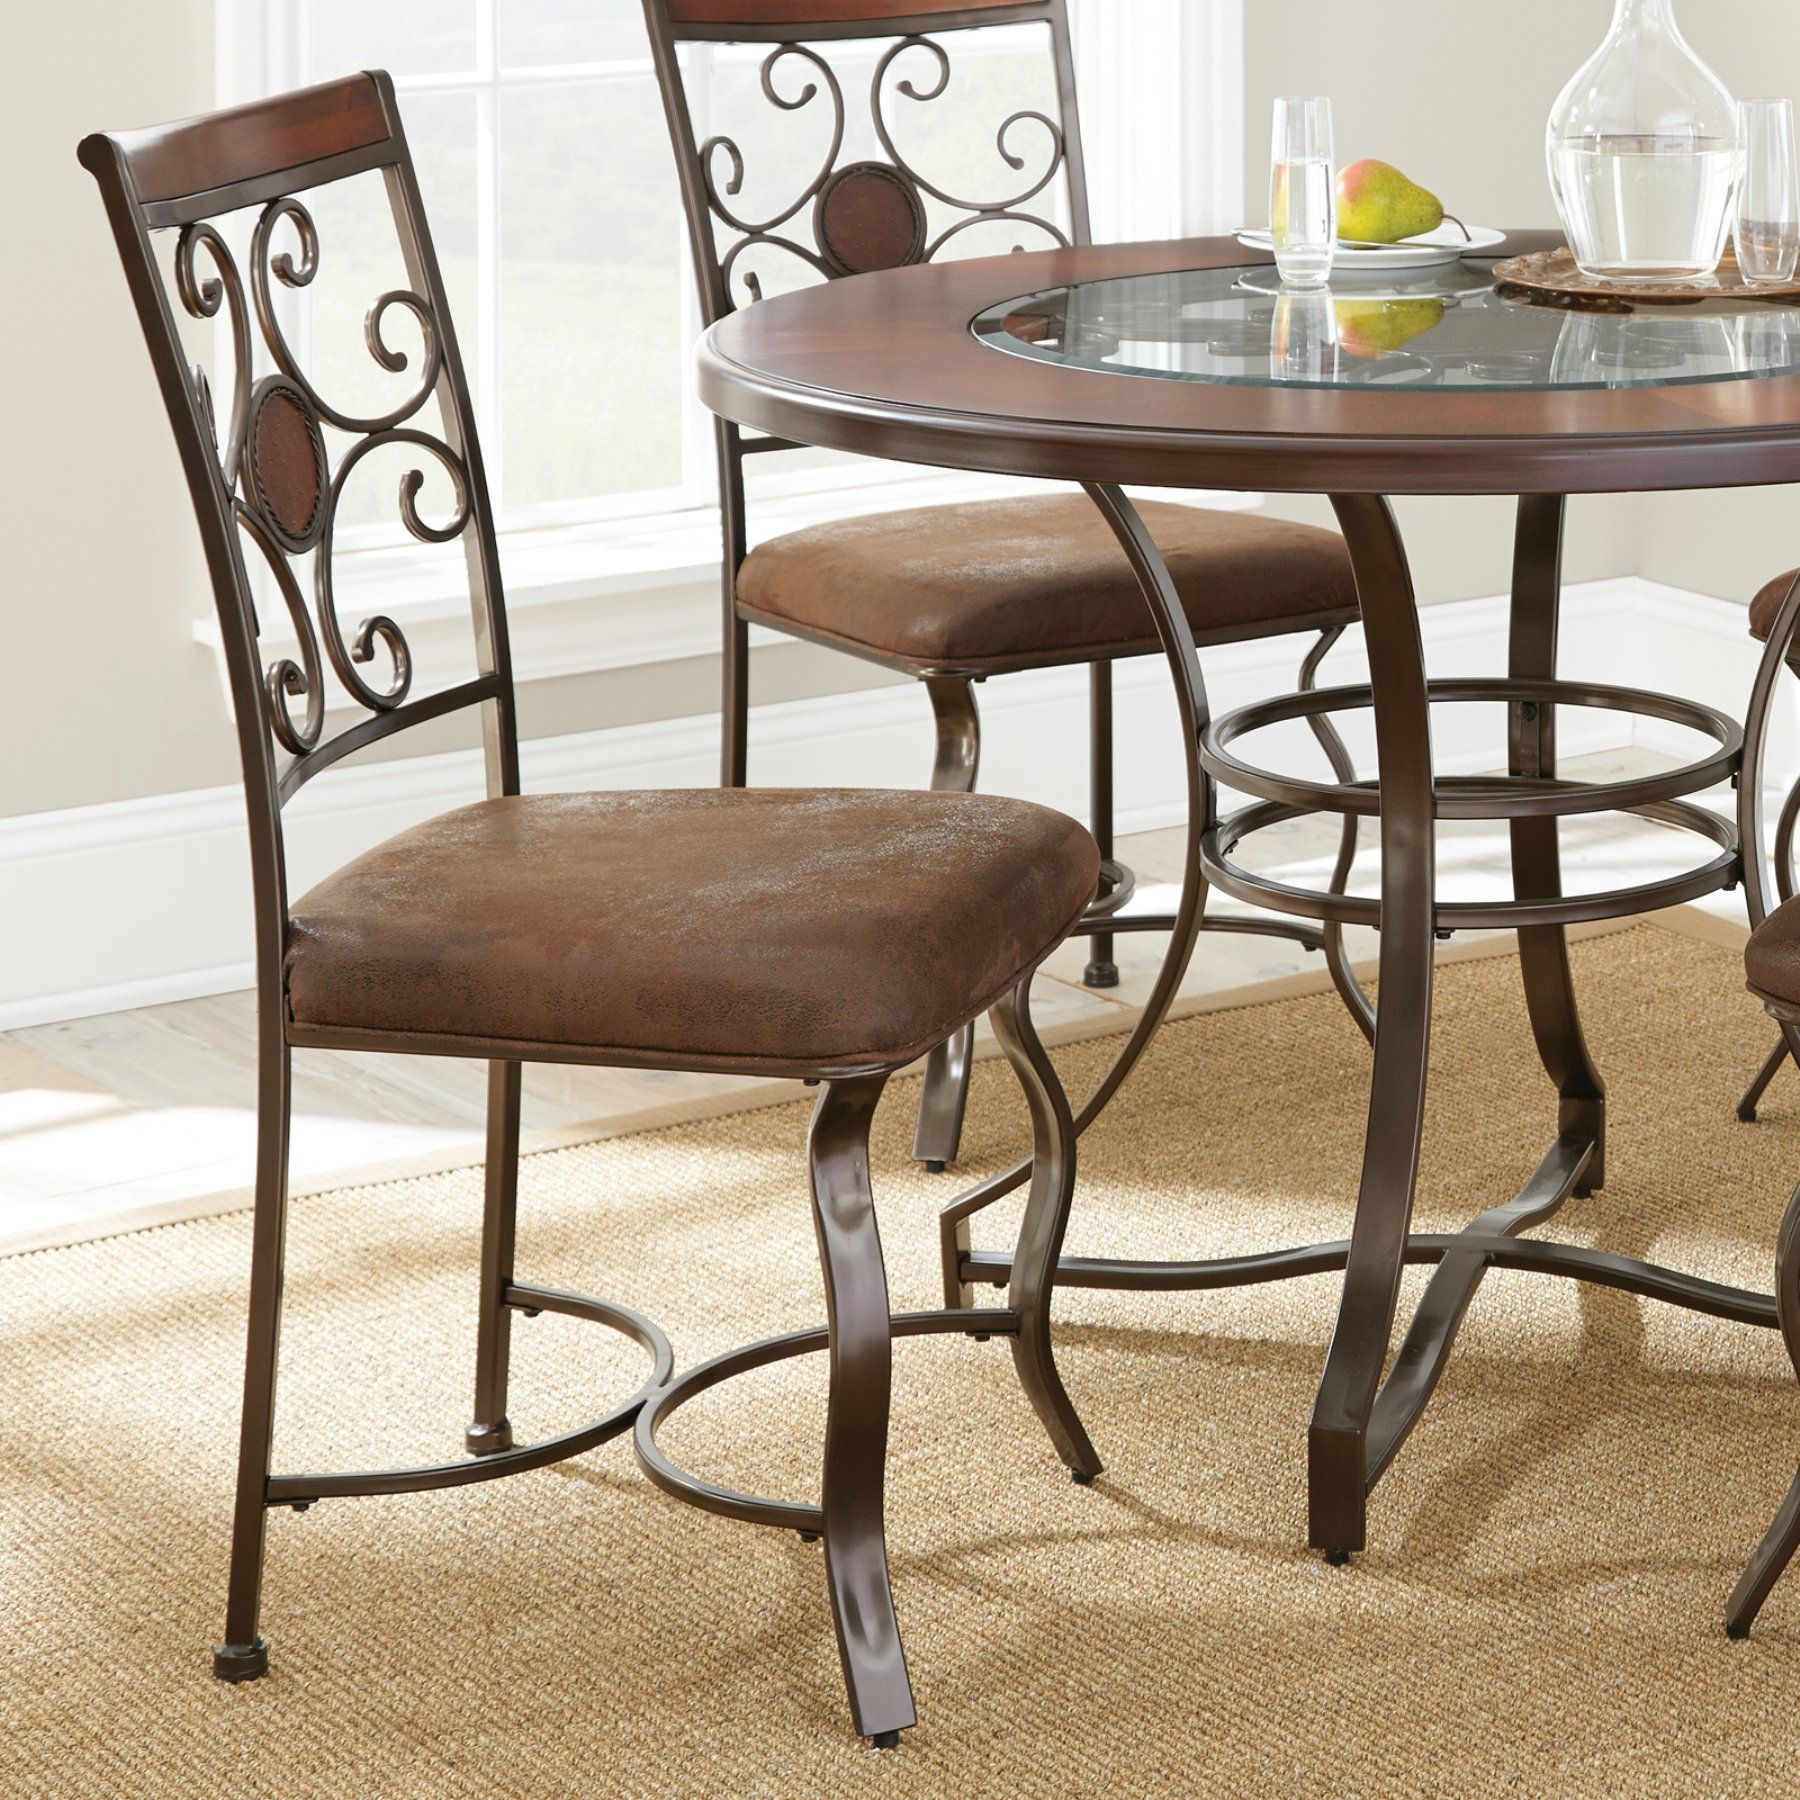 Steve silver toledo side dining chair set of rich brown